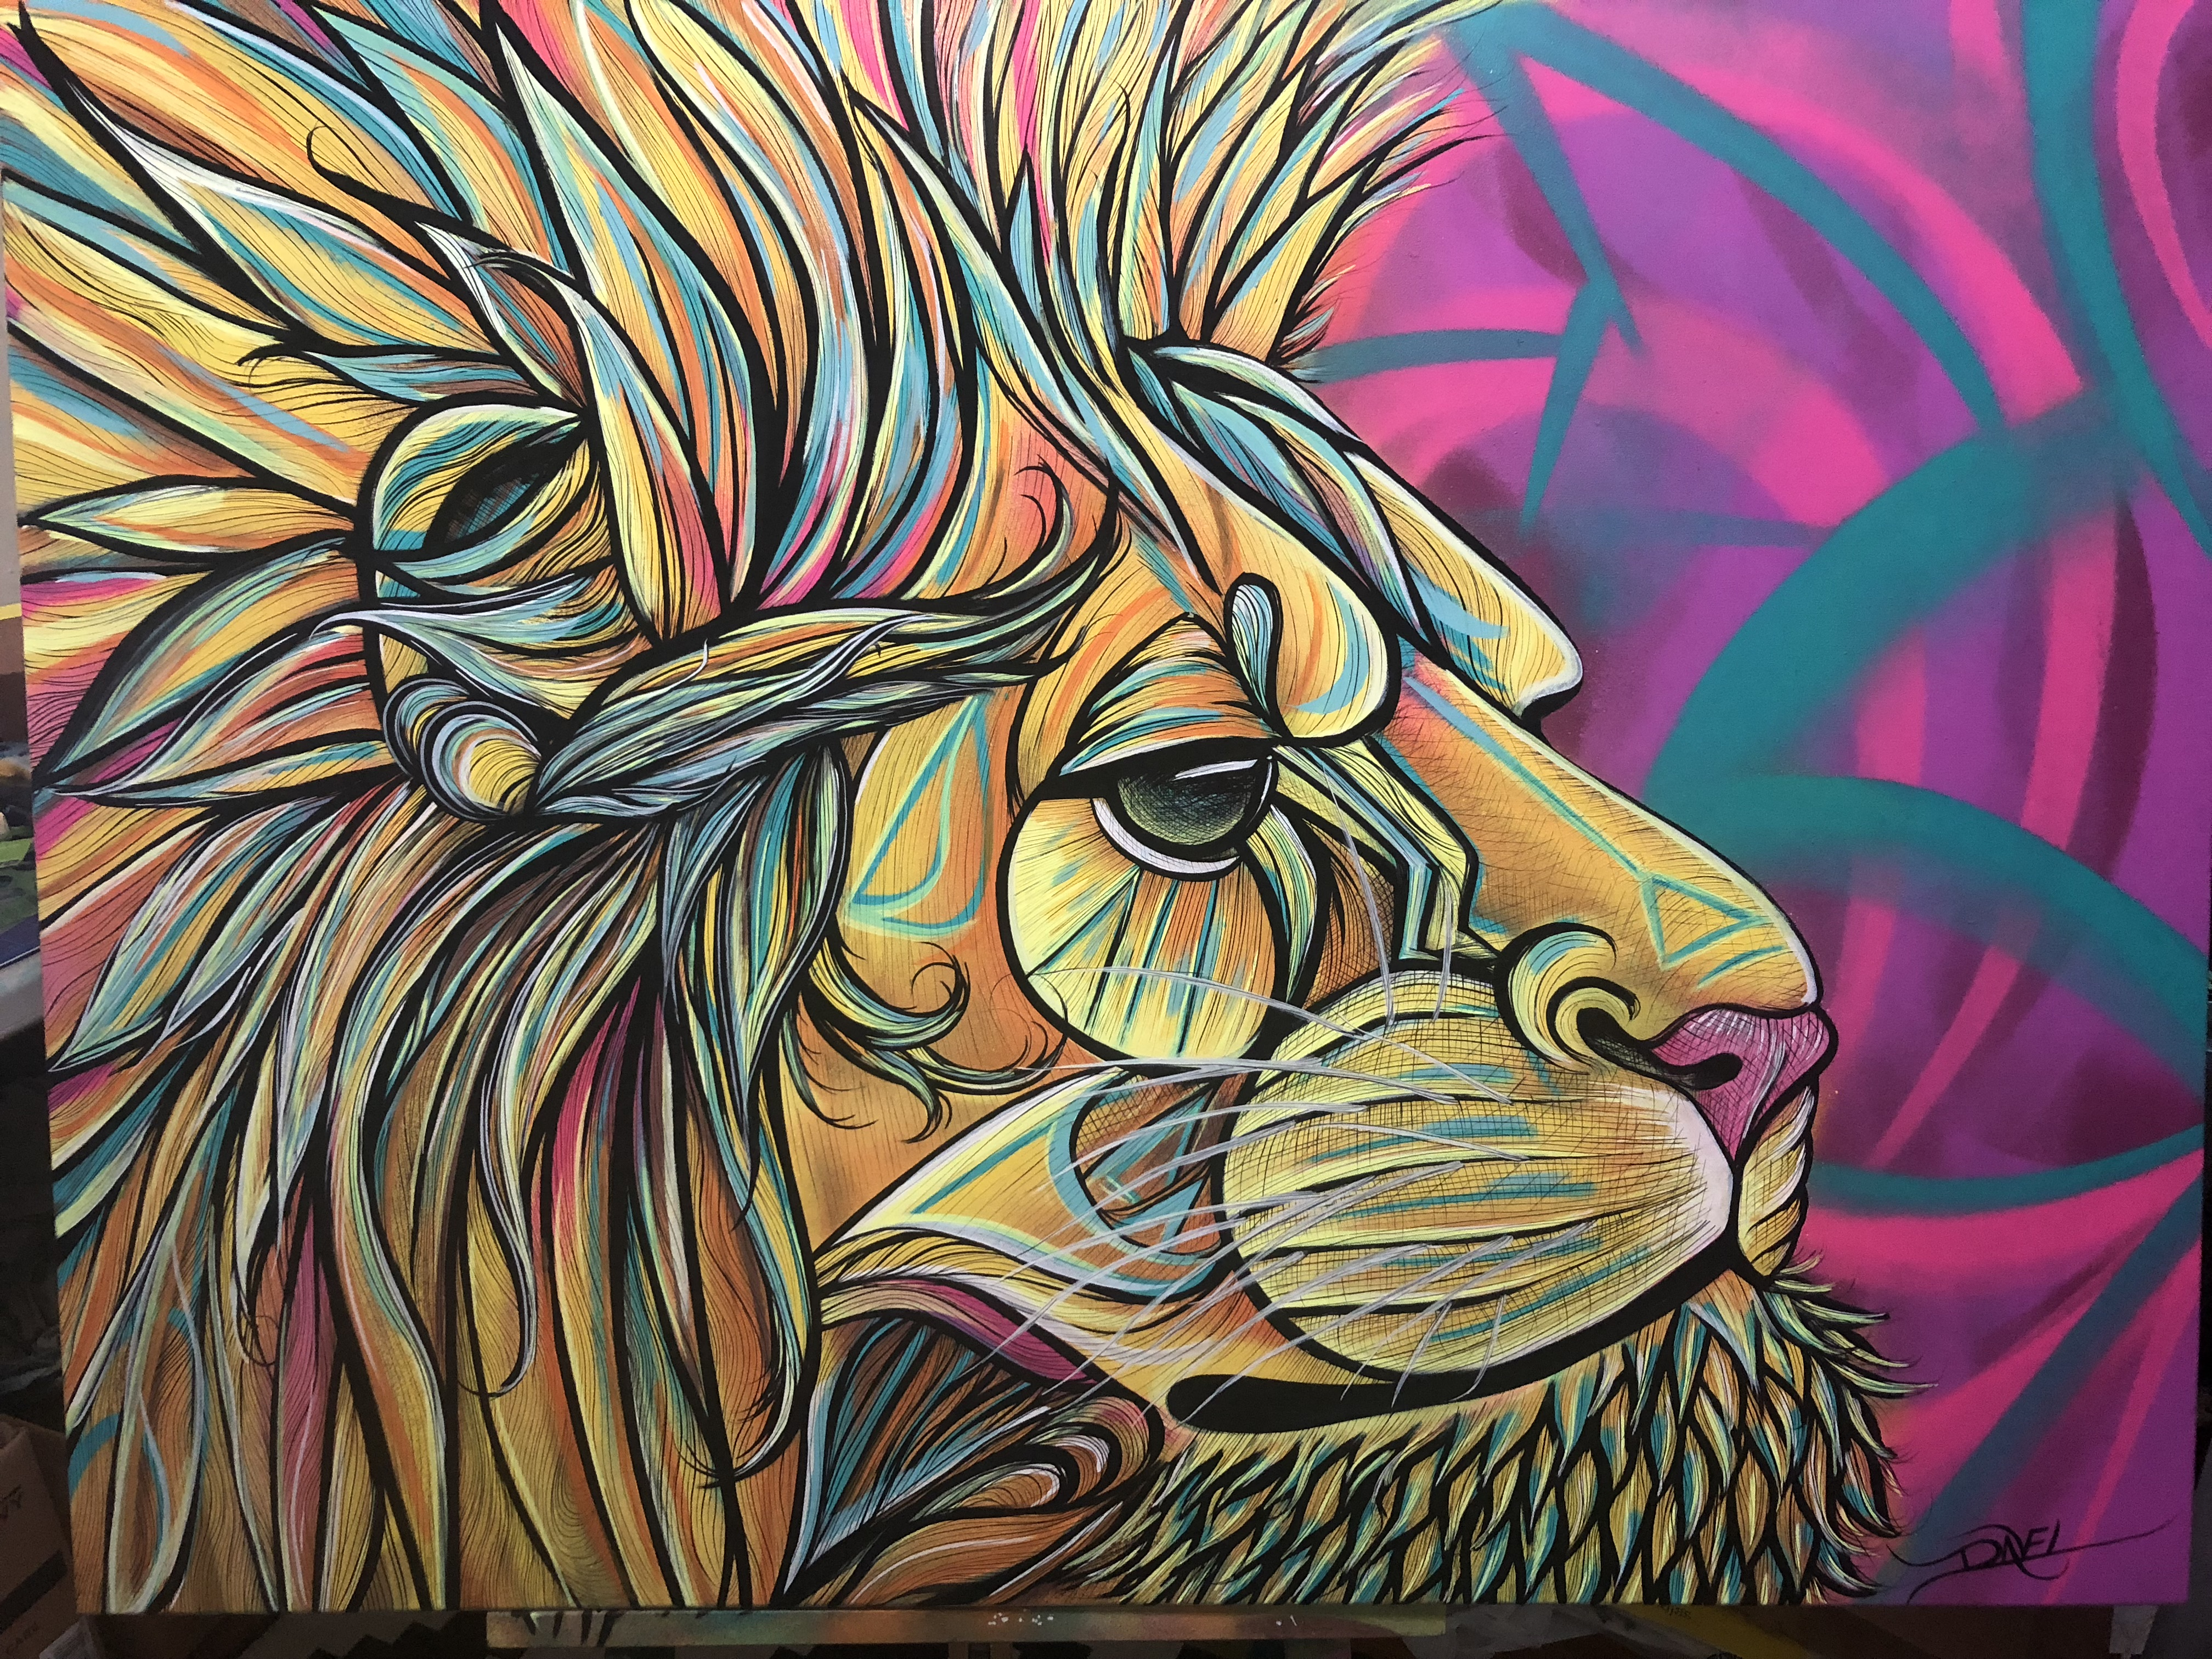 Lion Painting on Canvas